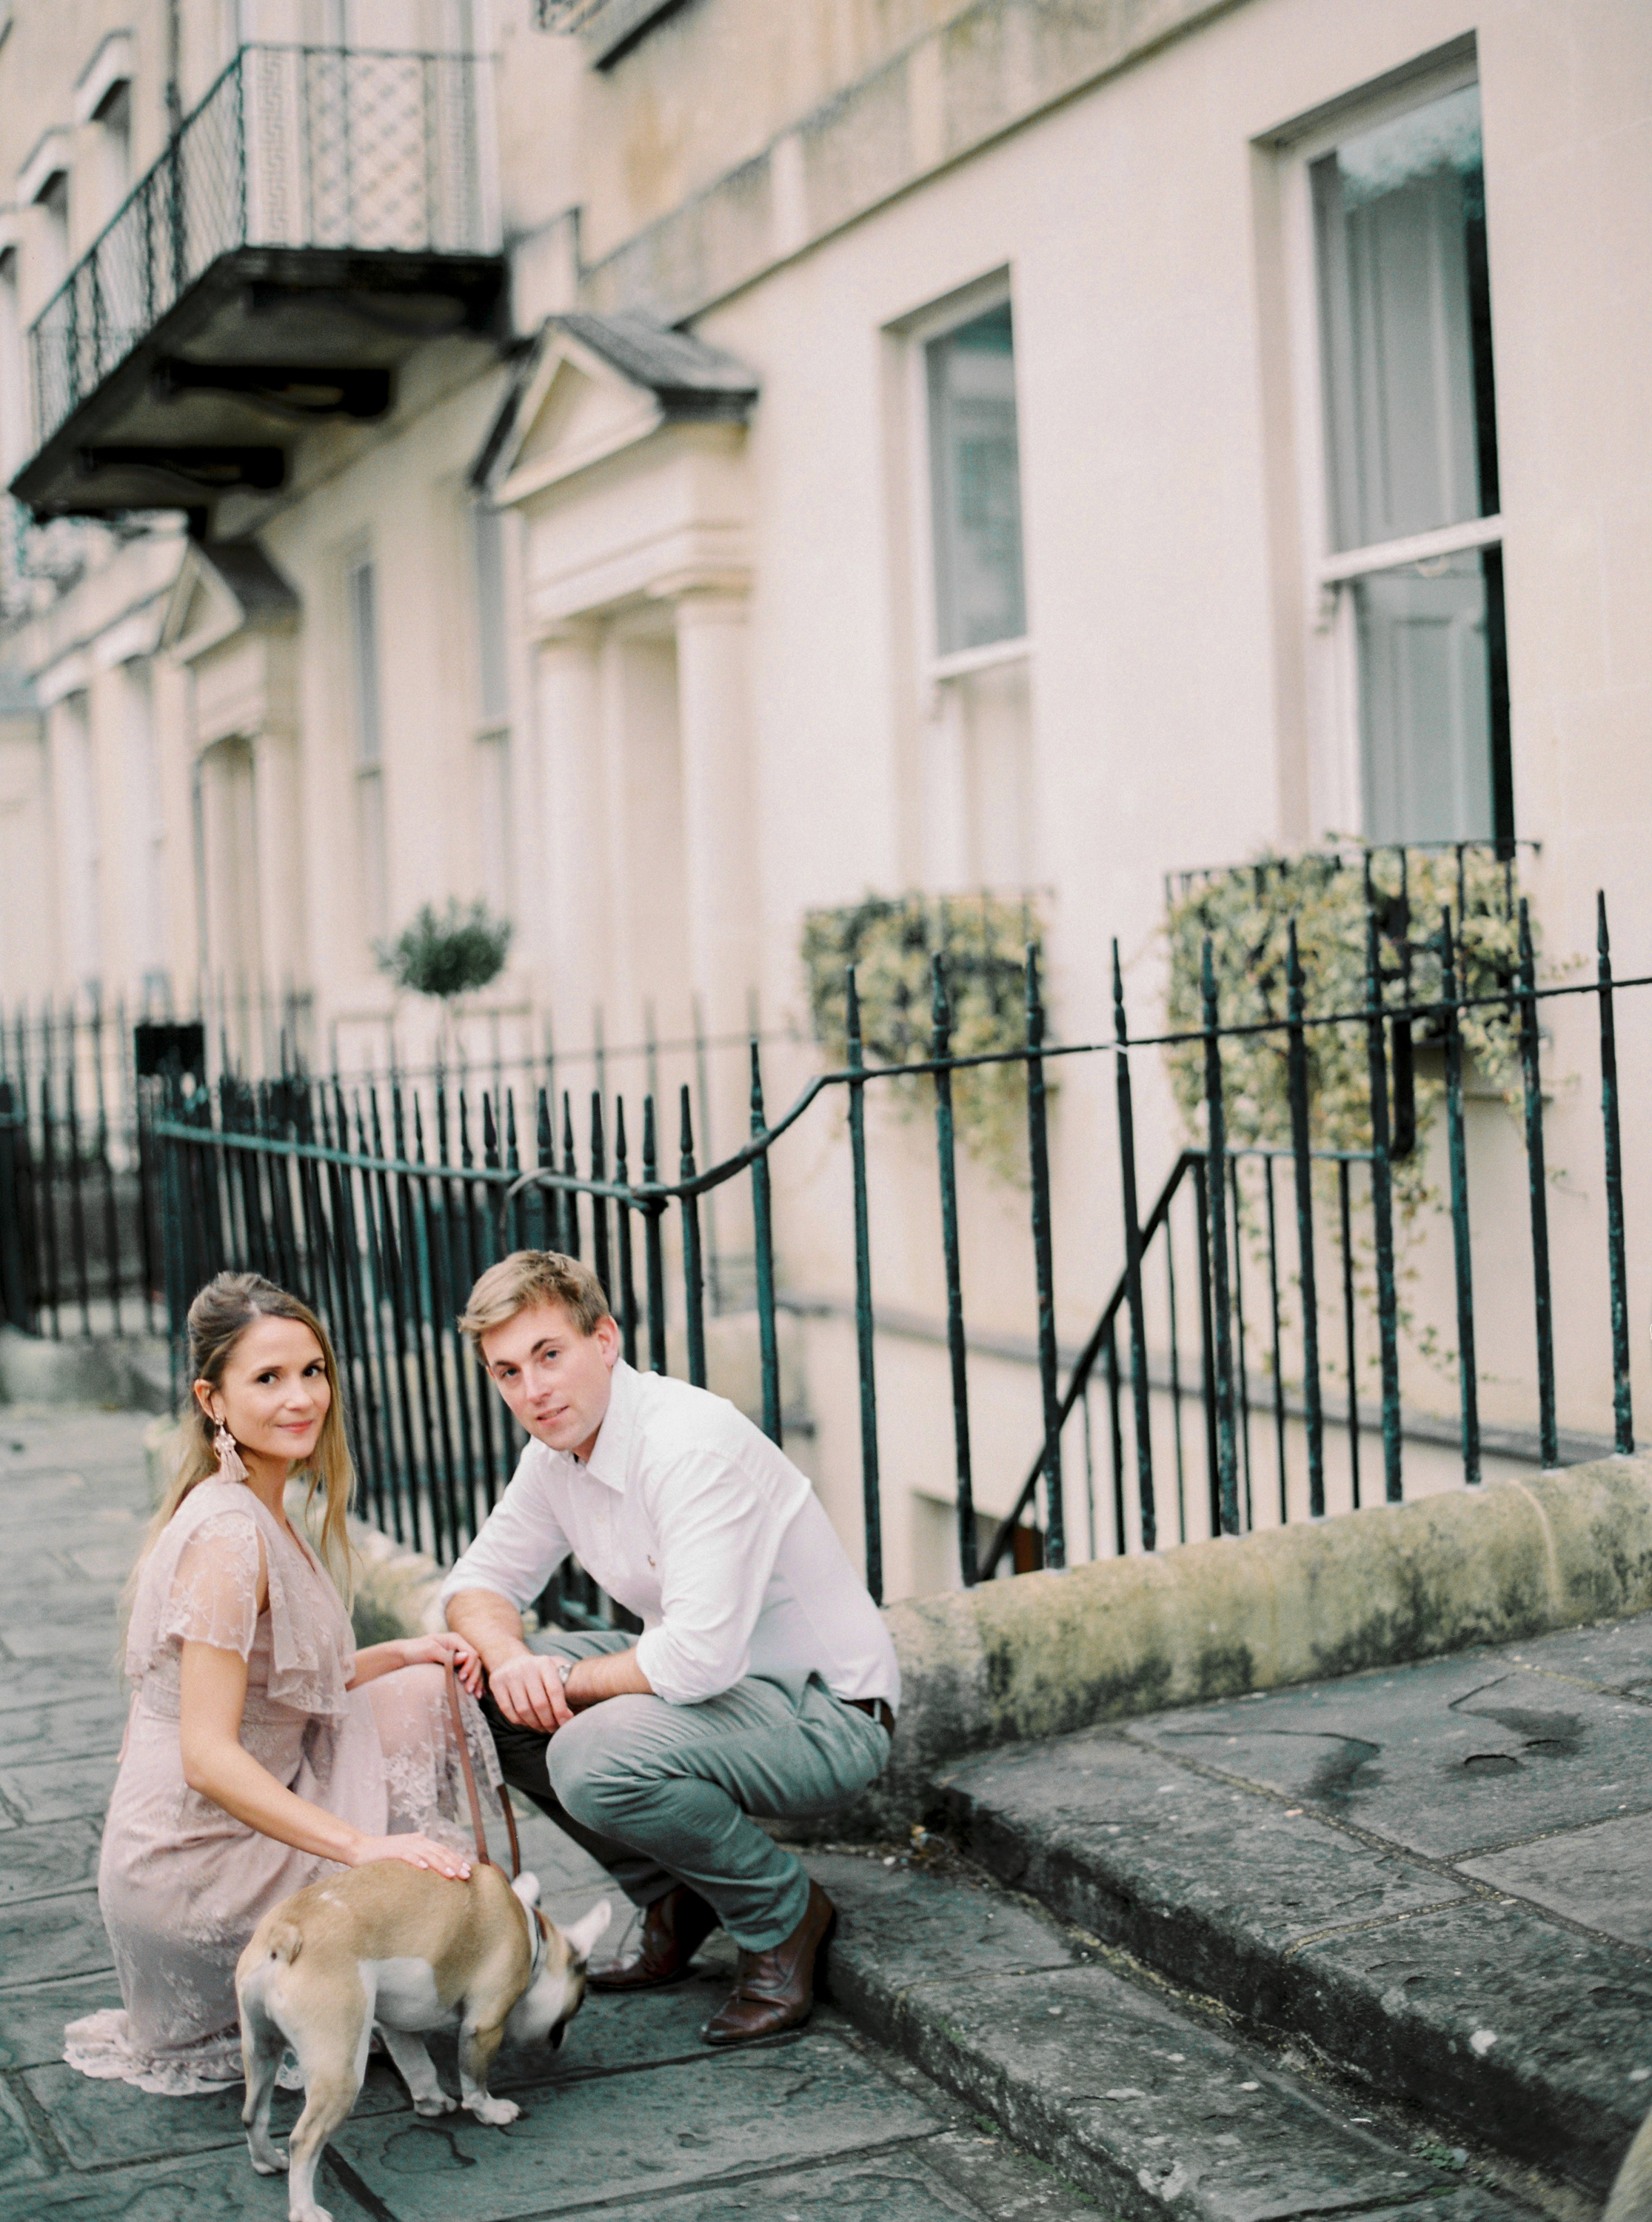 Lily & Sage   Luxury Wedding Planner UK   Our Chic & Romantic Engagement Shoot in Bath   Katie Julia Photography - 019.JPG